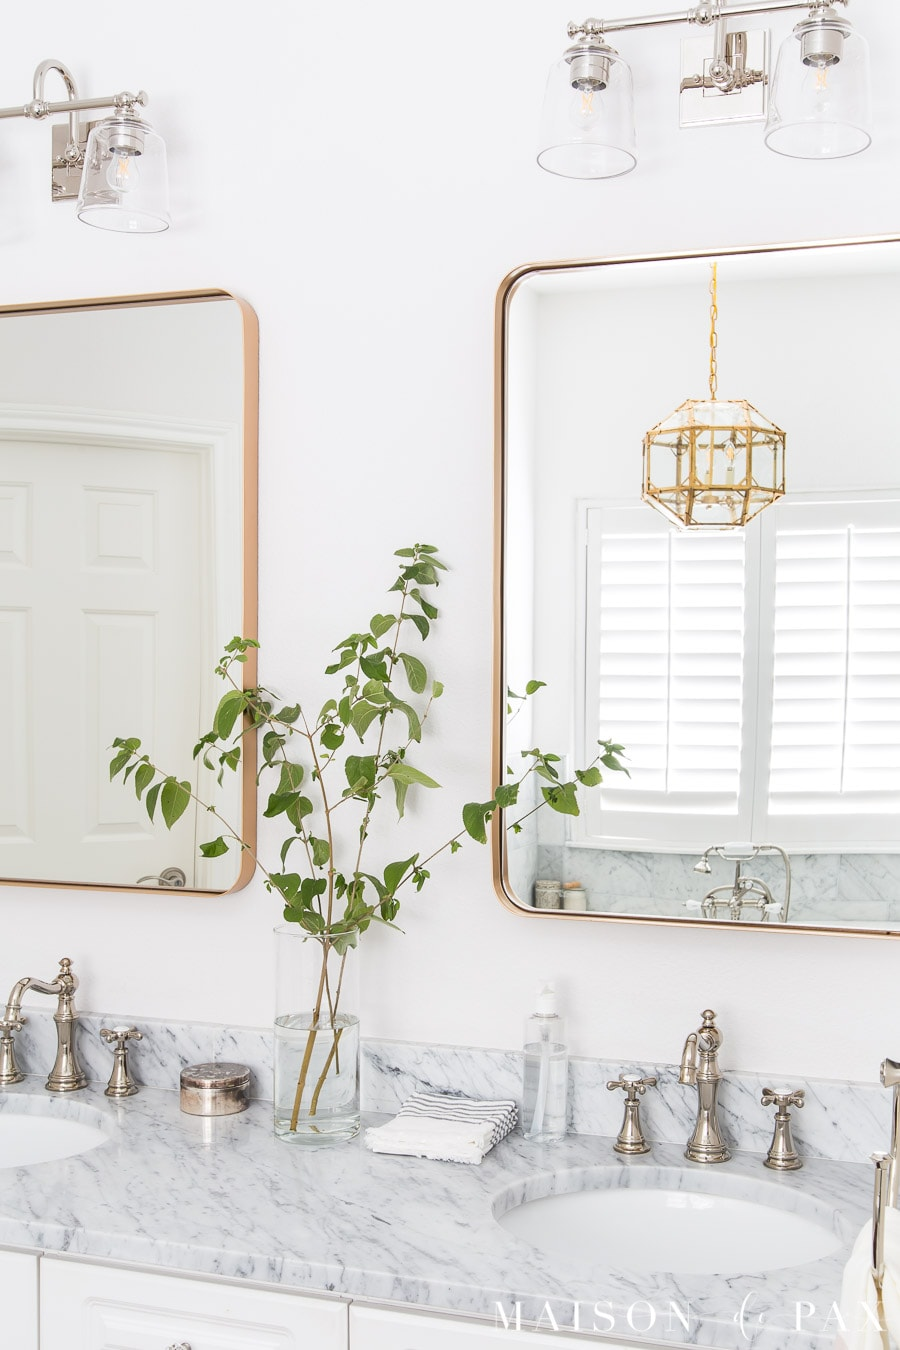 mixed metals in bathroom: gold mirrors with polished nickel faucets | Maison de Pax